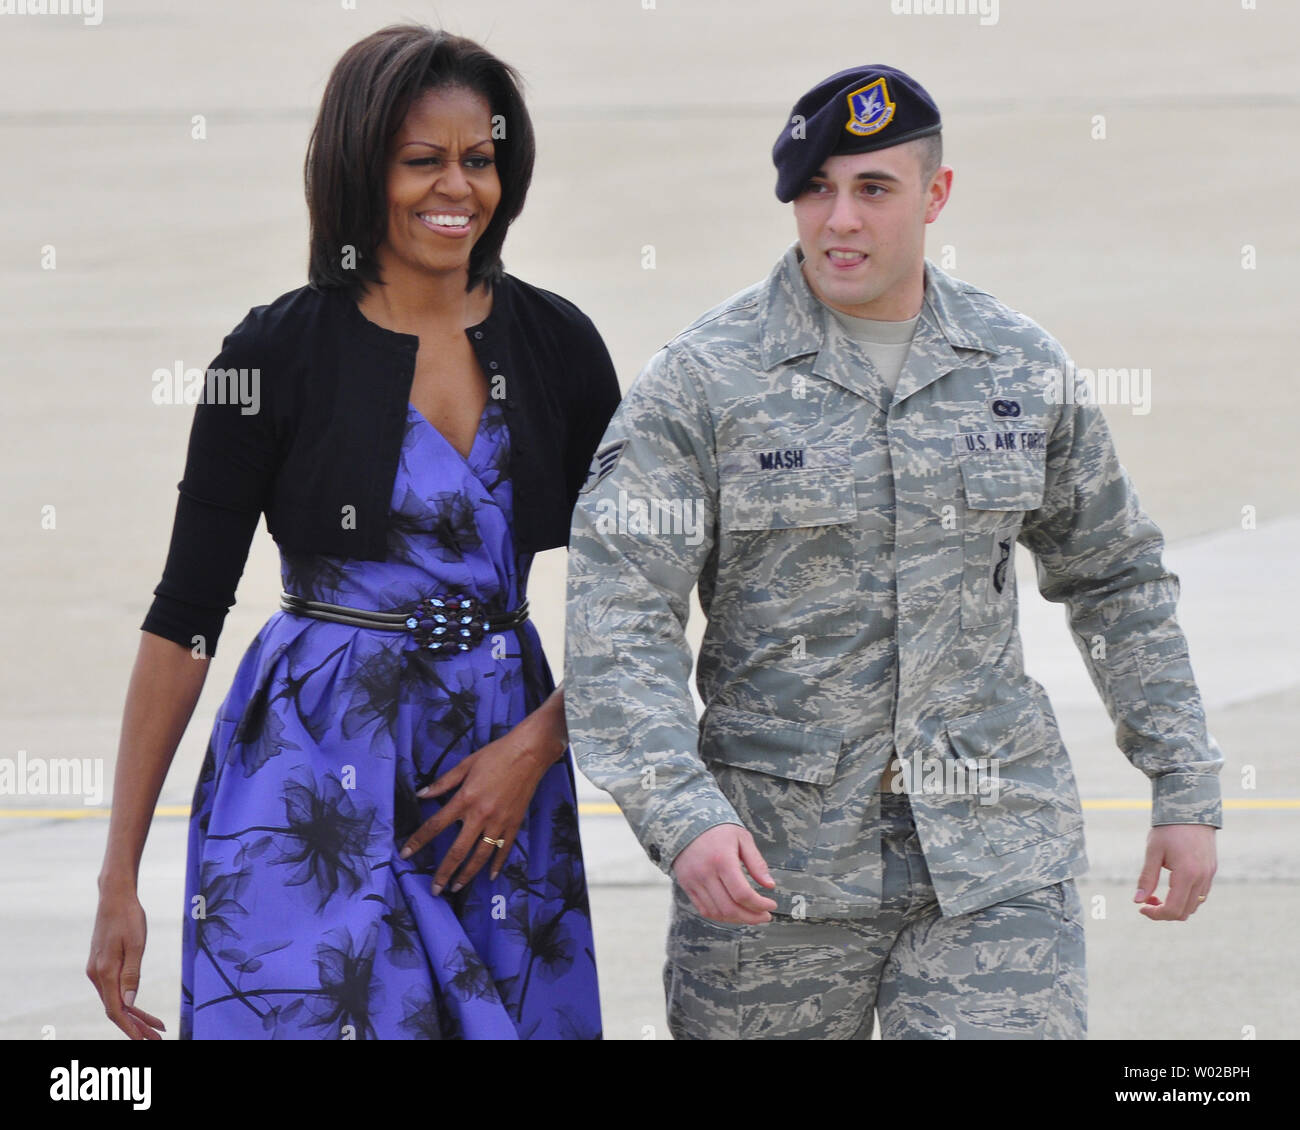 First Lady Michelle Obama walks with Senior Airman Domenic Mash (R) on the tarmac at the base for the 911th Airlift Wing of the Air Force Reserve Command and the 171st Air Refueling Wing near Pittsburgh on April 17, 2012.    UPI/Archie Carpenter Stock Photo